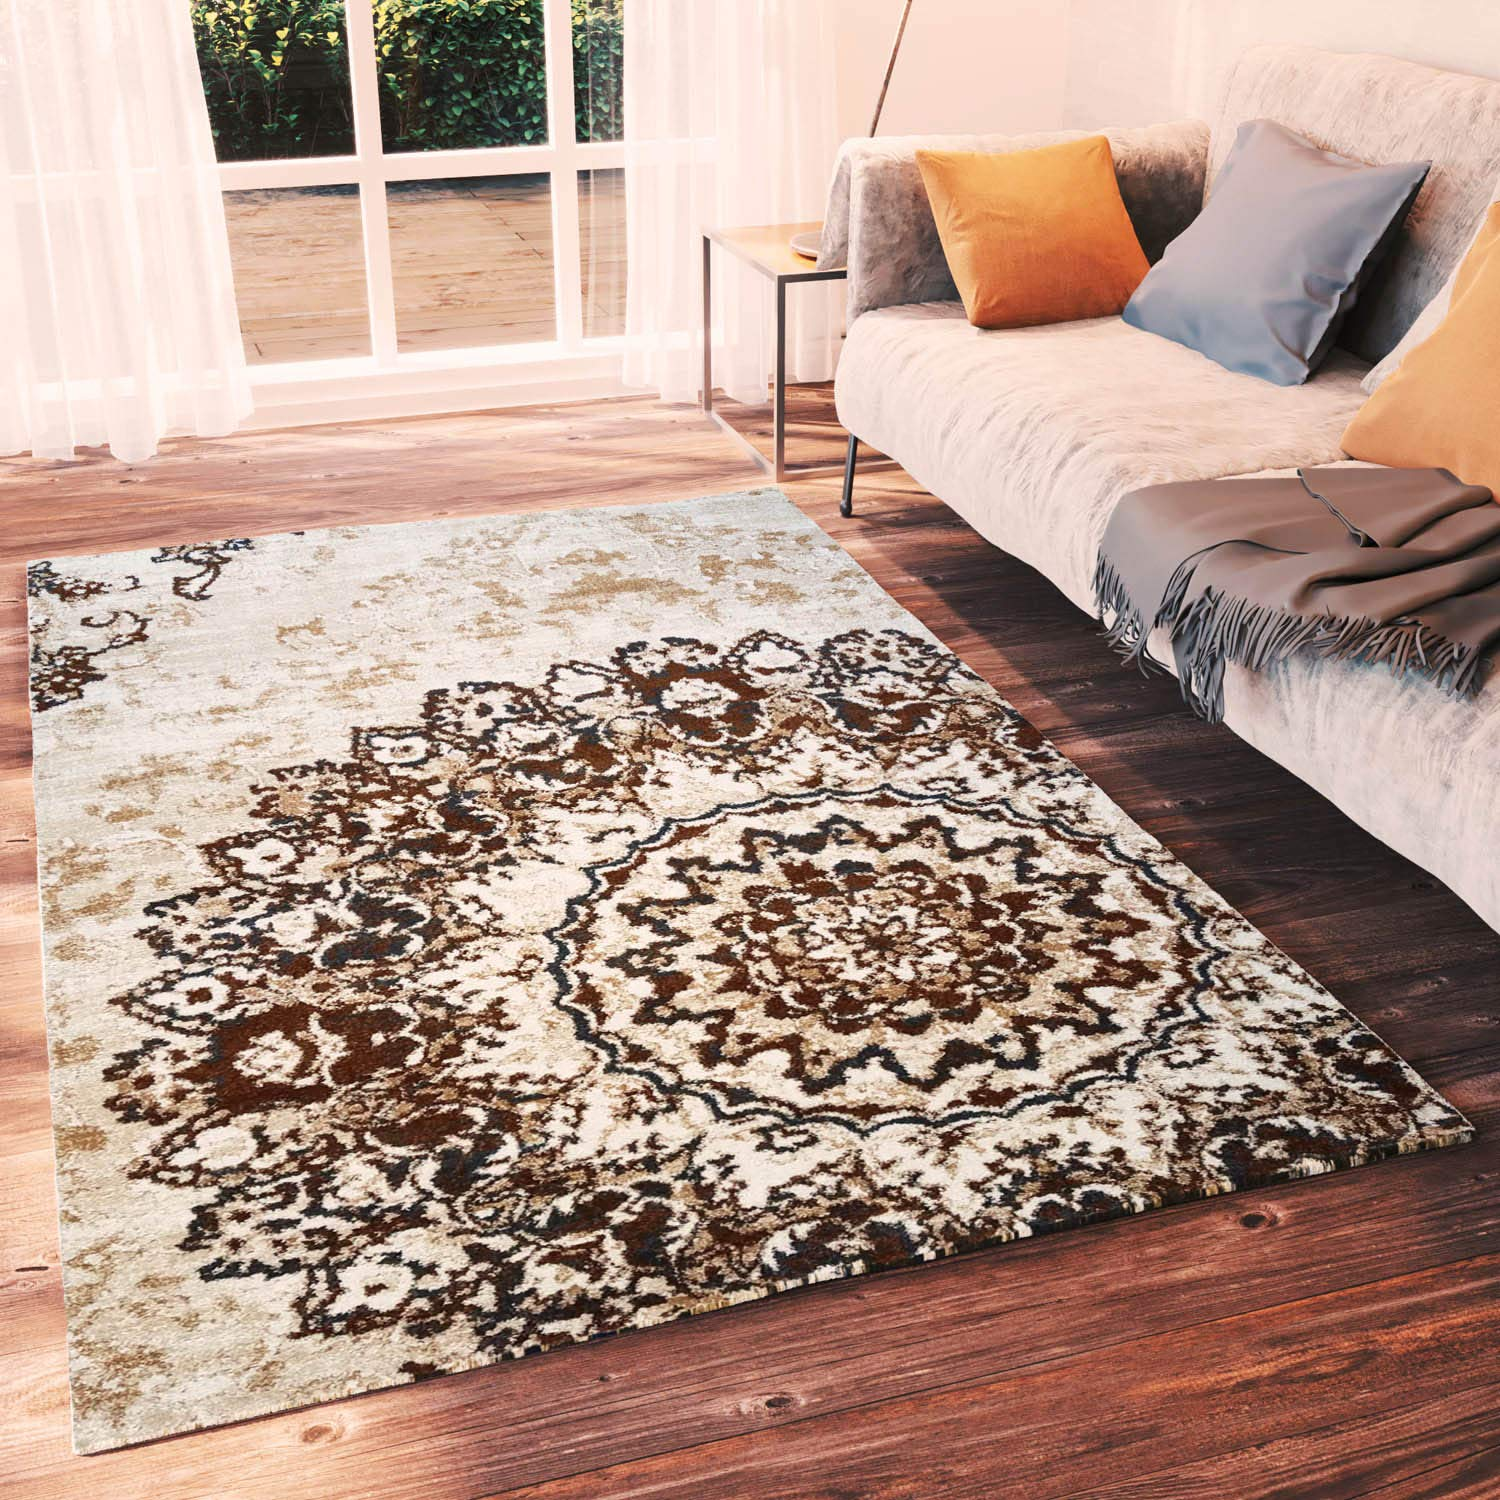 Amazon Com Super Area Rugs Neutral Distressed Medallion Damask